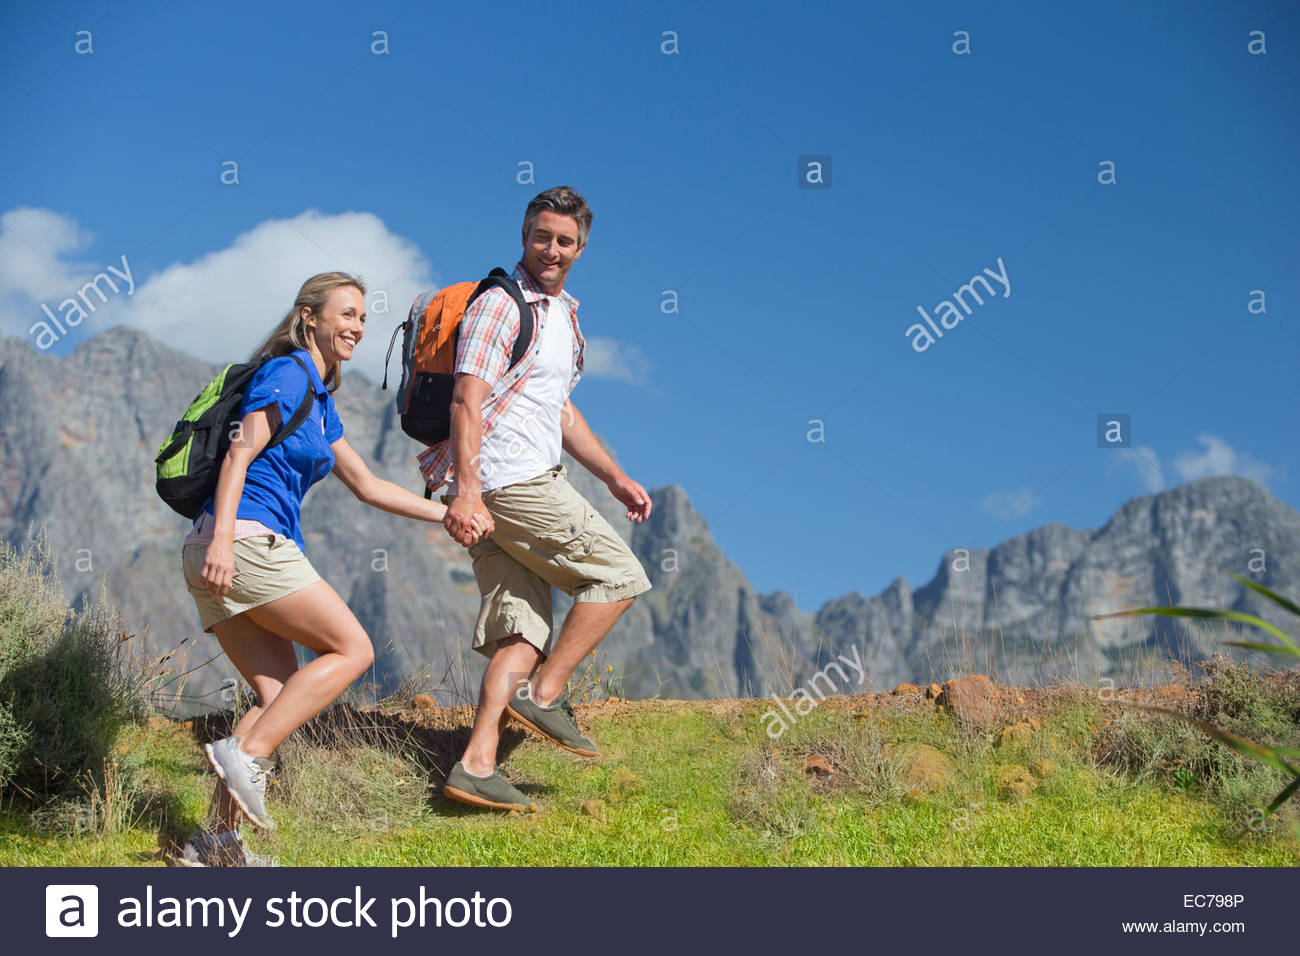 Couple hiking on a mountain path - Stock Image